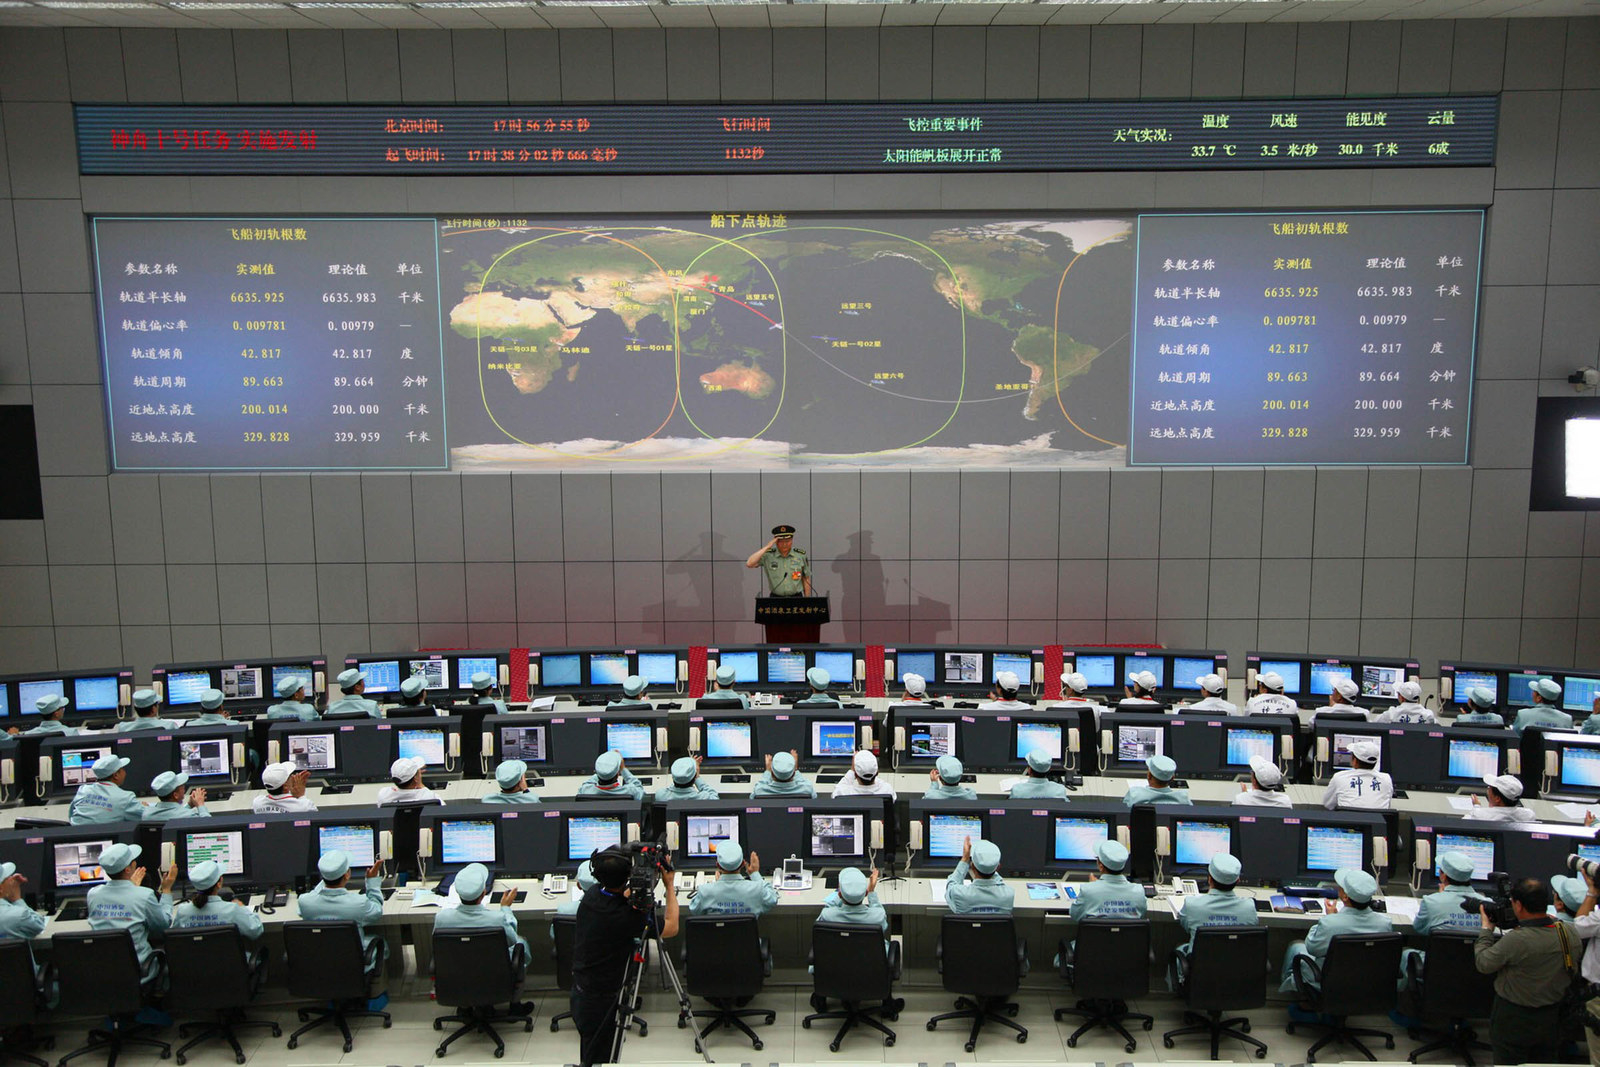 2013 Chinese chief mission commander Zhang Youxia salutes after he announced the successful launch of the Shenzhou-10 rocket from the Jiuquan space centre in the Gobi Desert in Jiuquan, in northwest China's Gansu Province on June 11, 2013. China began its longest manned space mission yet on June 11 with the launch of the Shenzhou-10, state television showed, as the country stepped up an ambitious exploration programme symbolising its growing power.